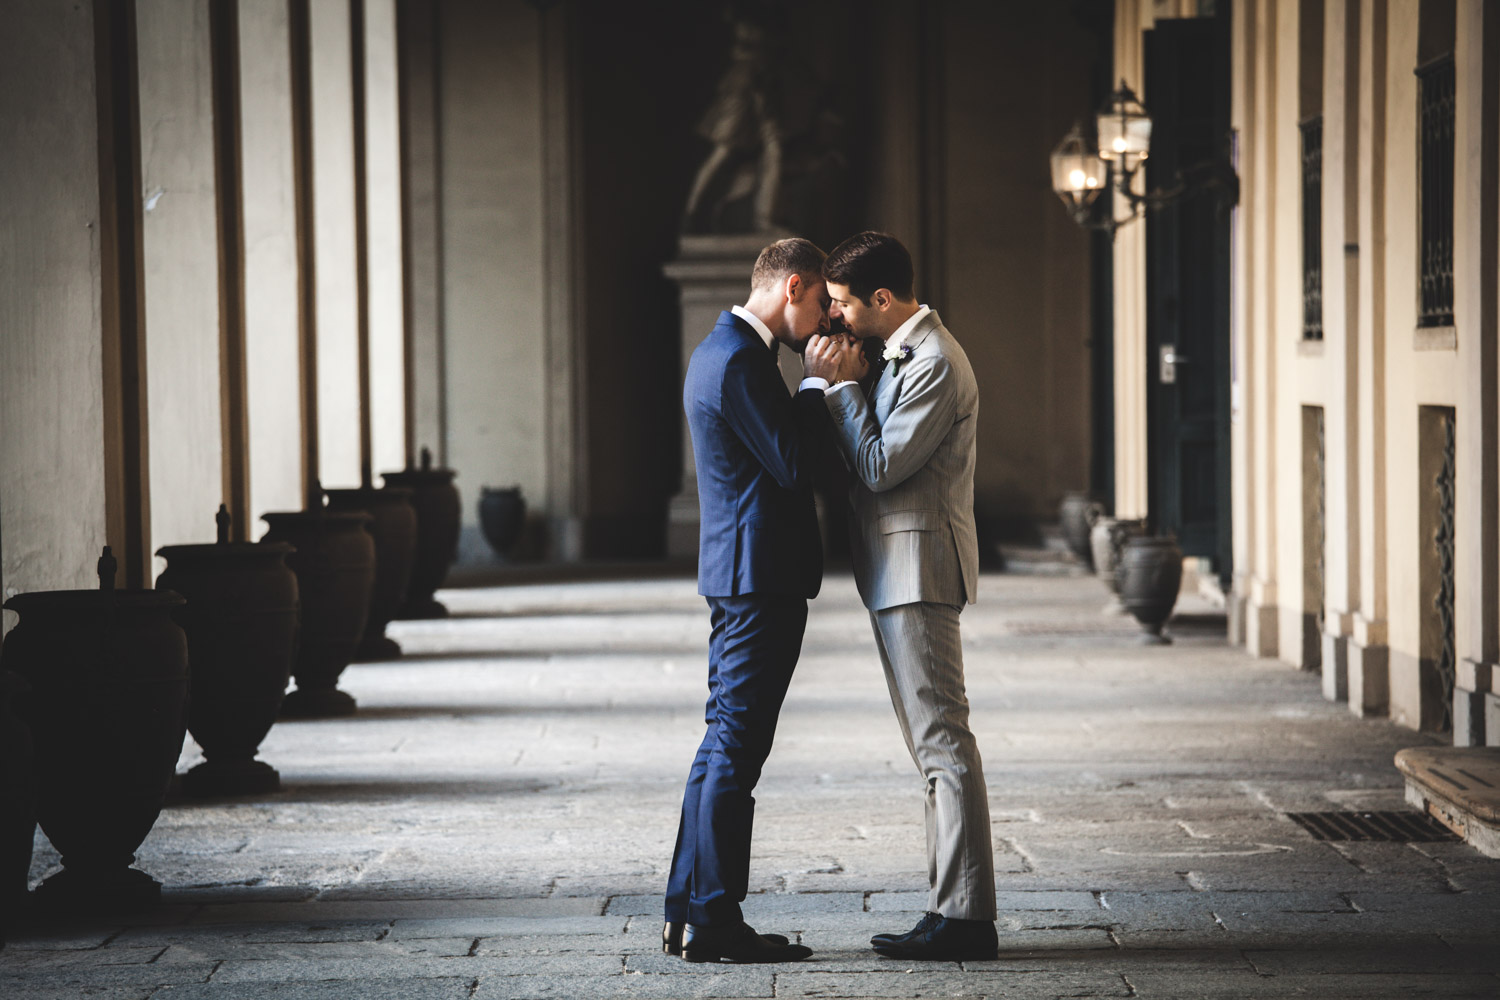 monica-sica_photography_trattoria-revelli_wedding-gay_torino_day_47